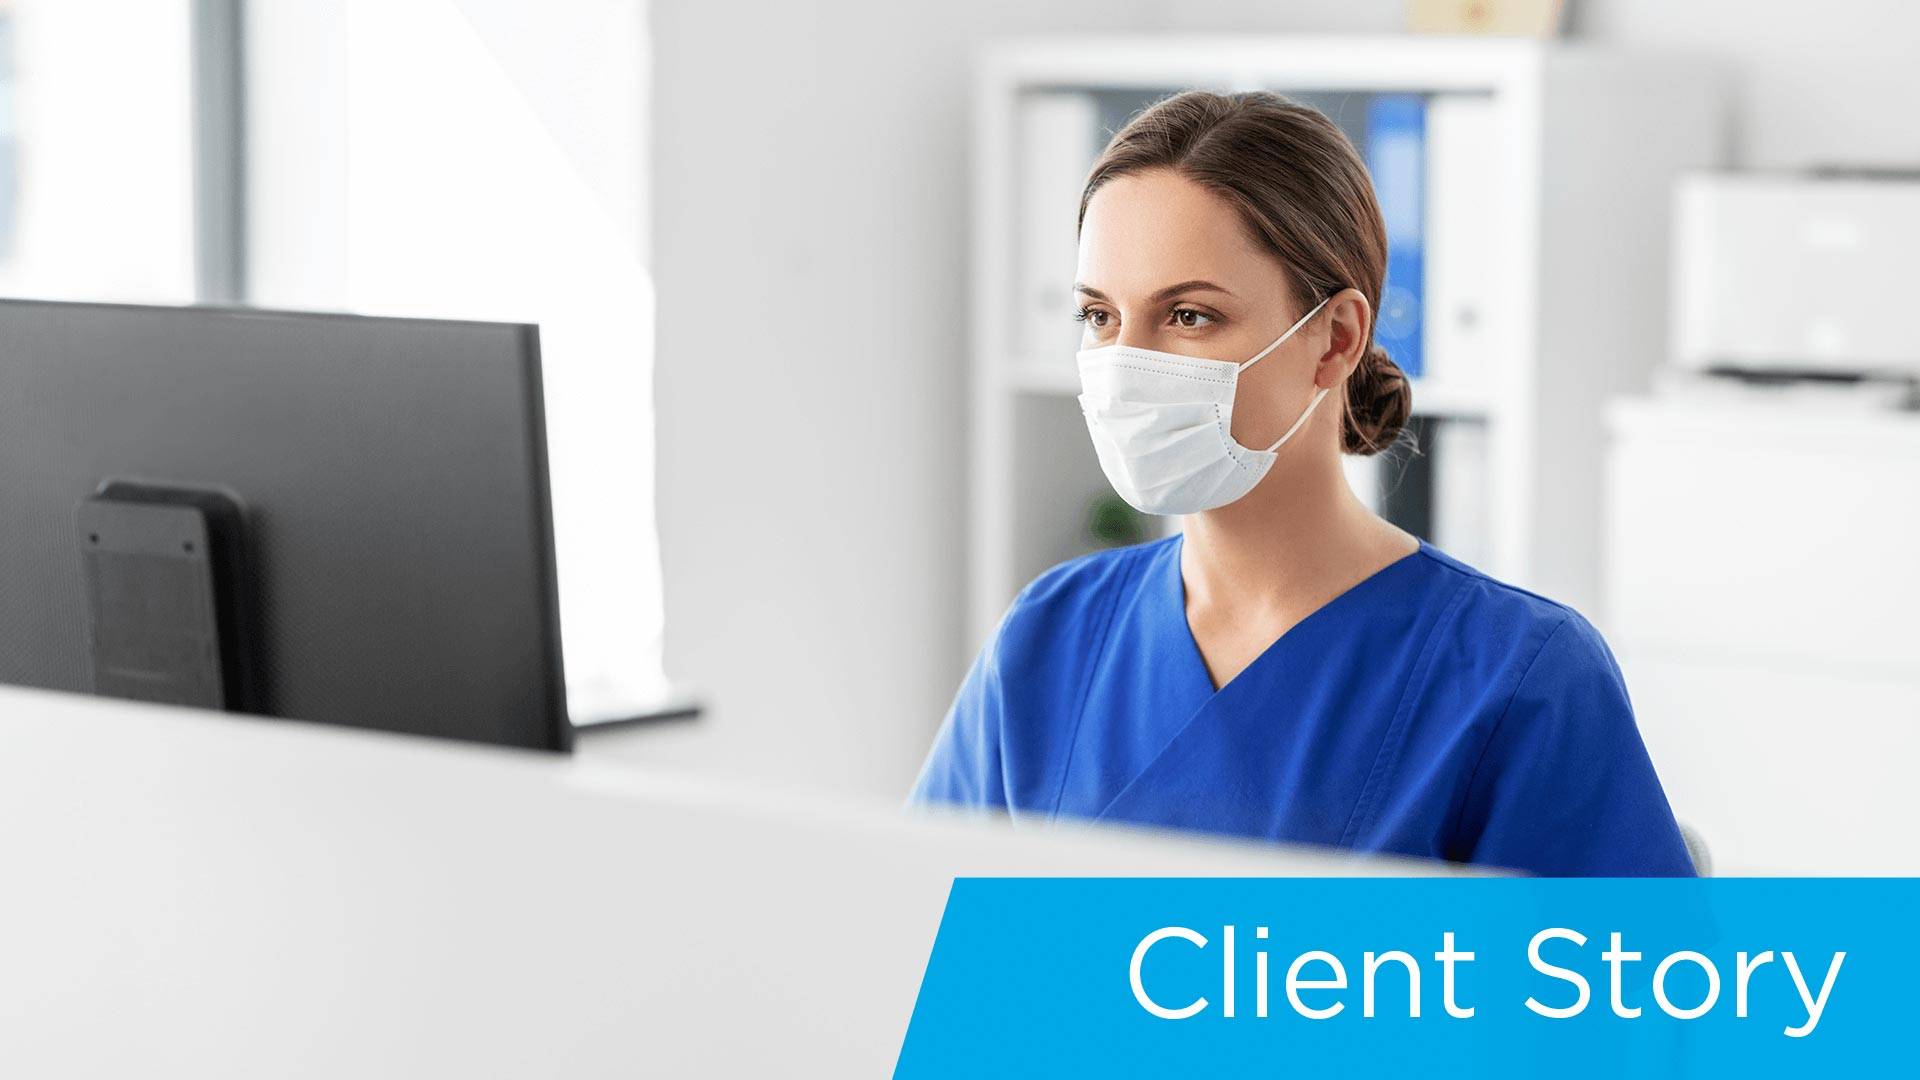 Client Story - Nurse at desk